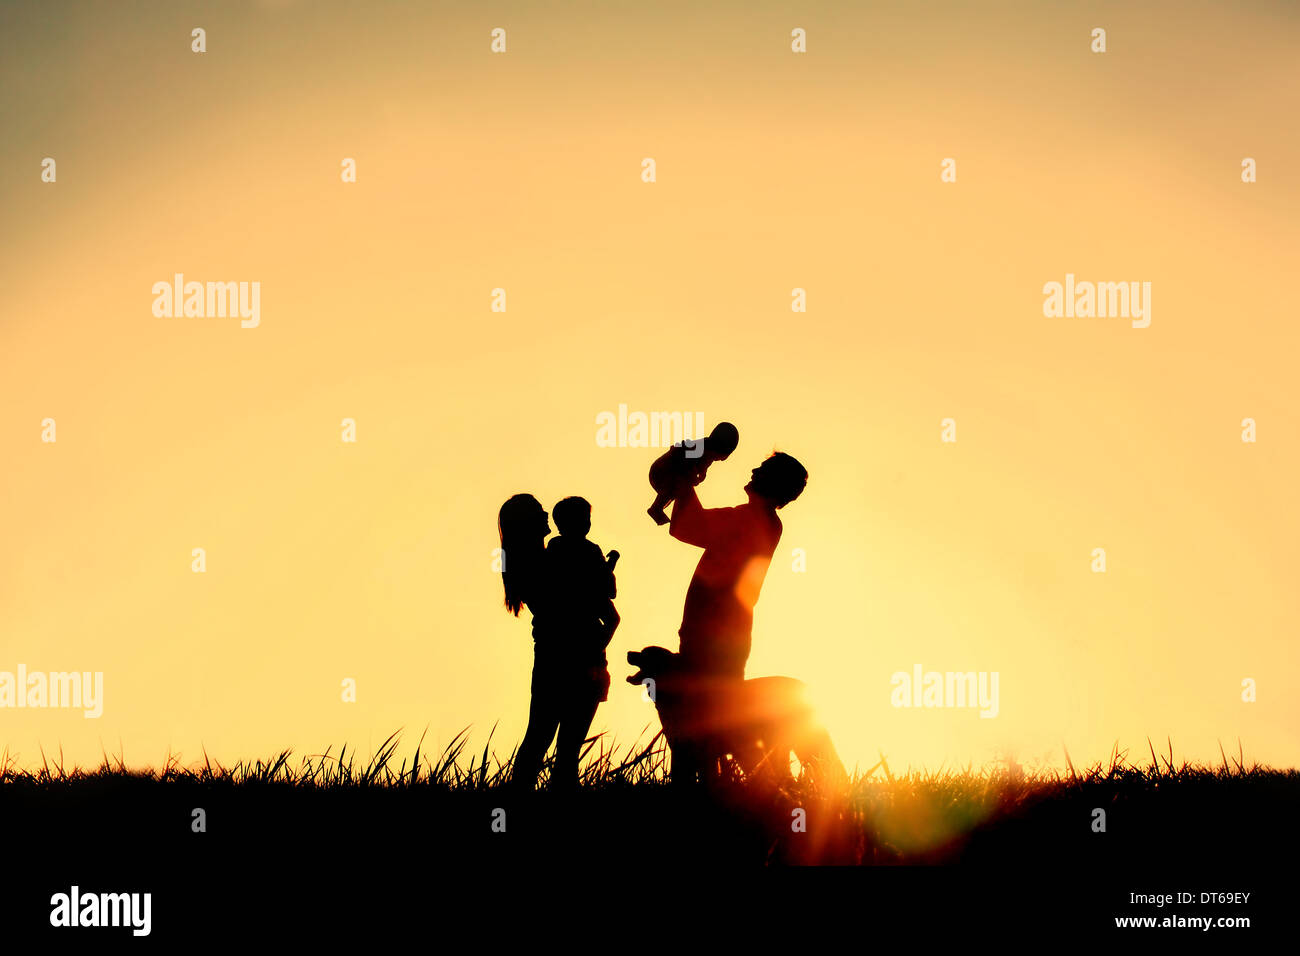 A silhouette of a happy family of four people, mother, father, baby, and child, and their dog in front of a sunsetting sky, - Stock Image